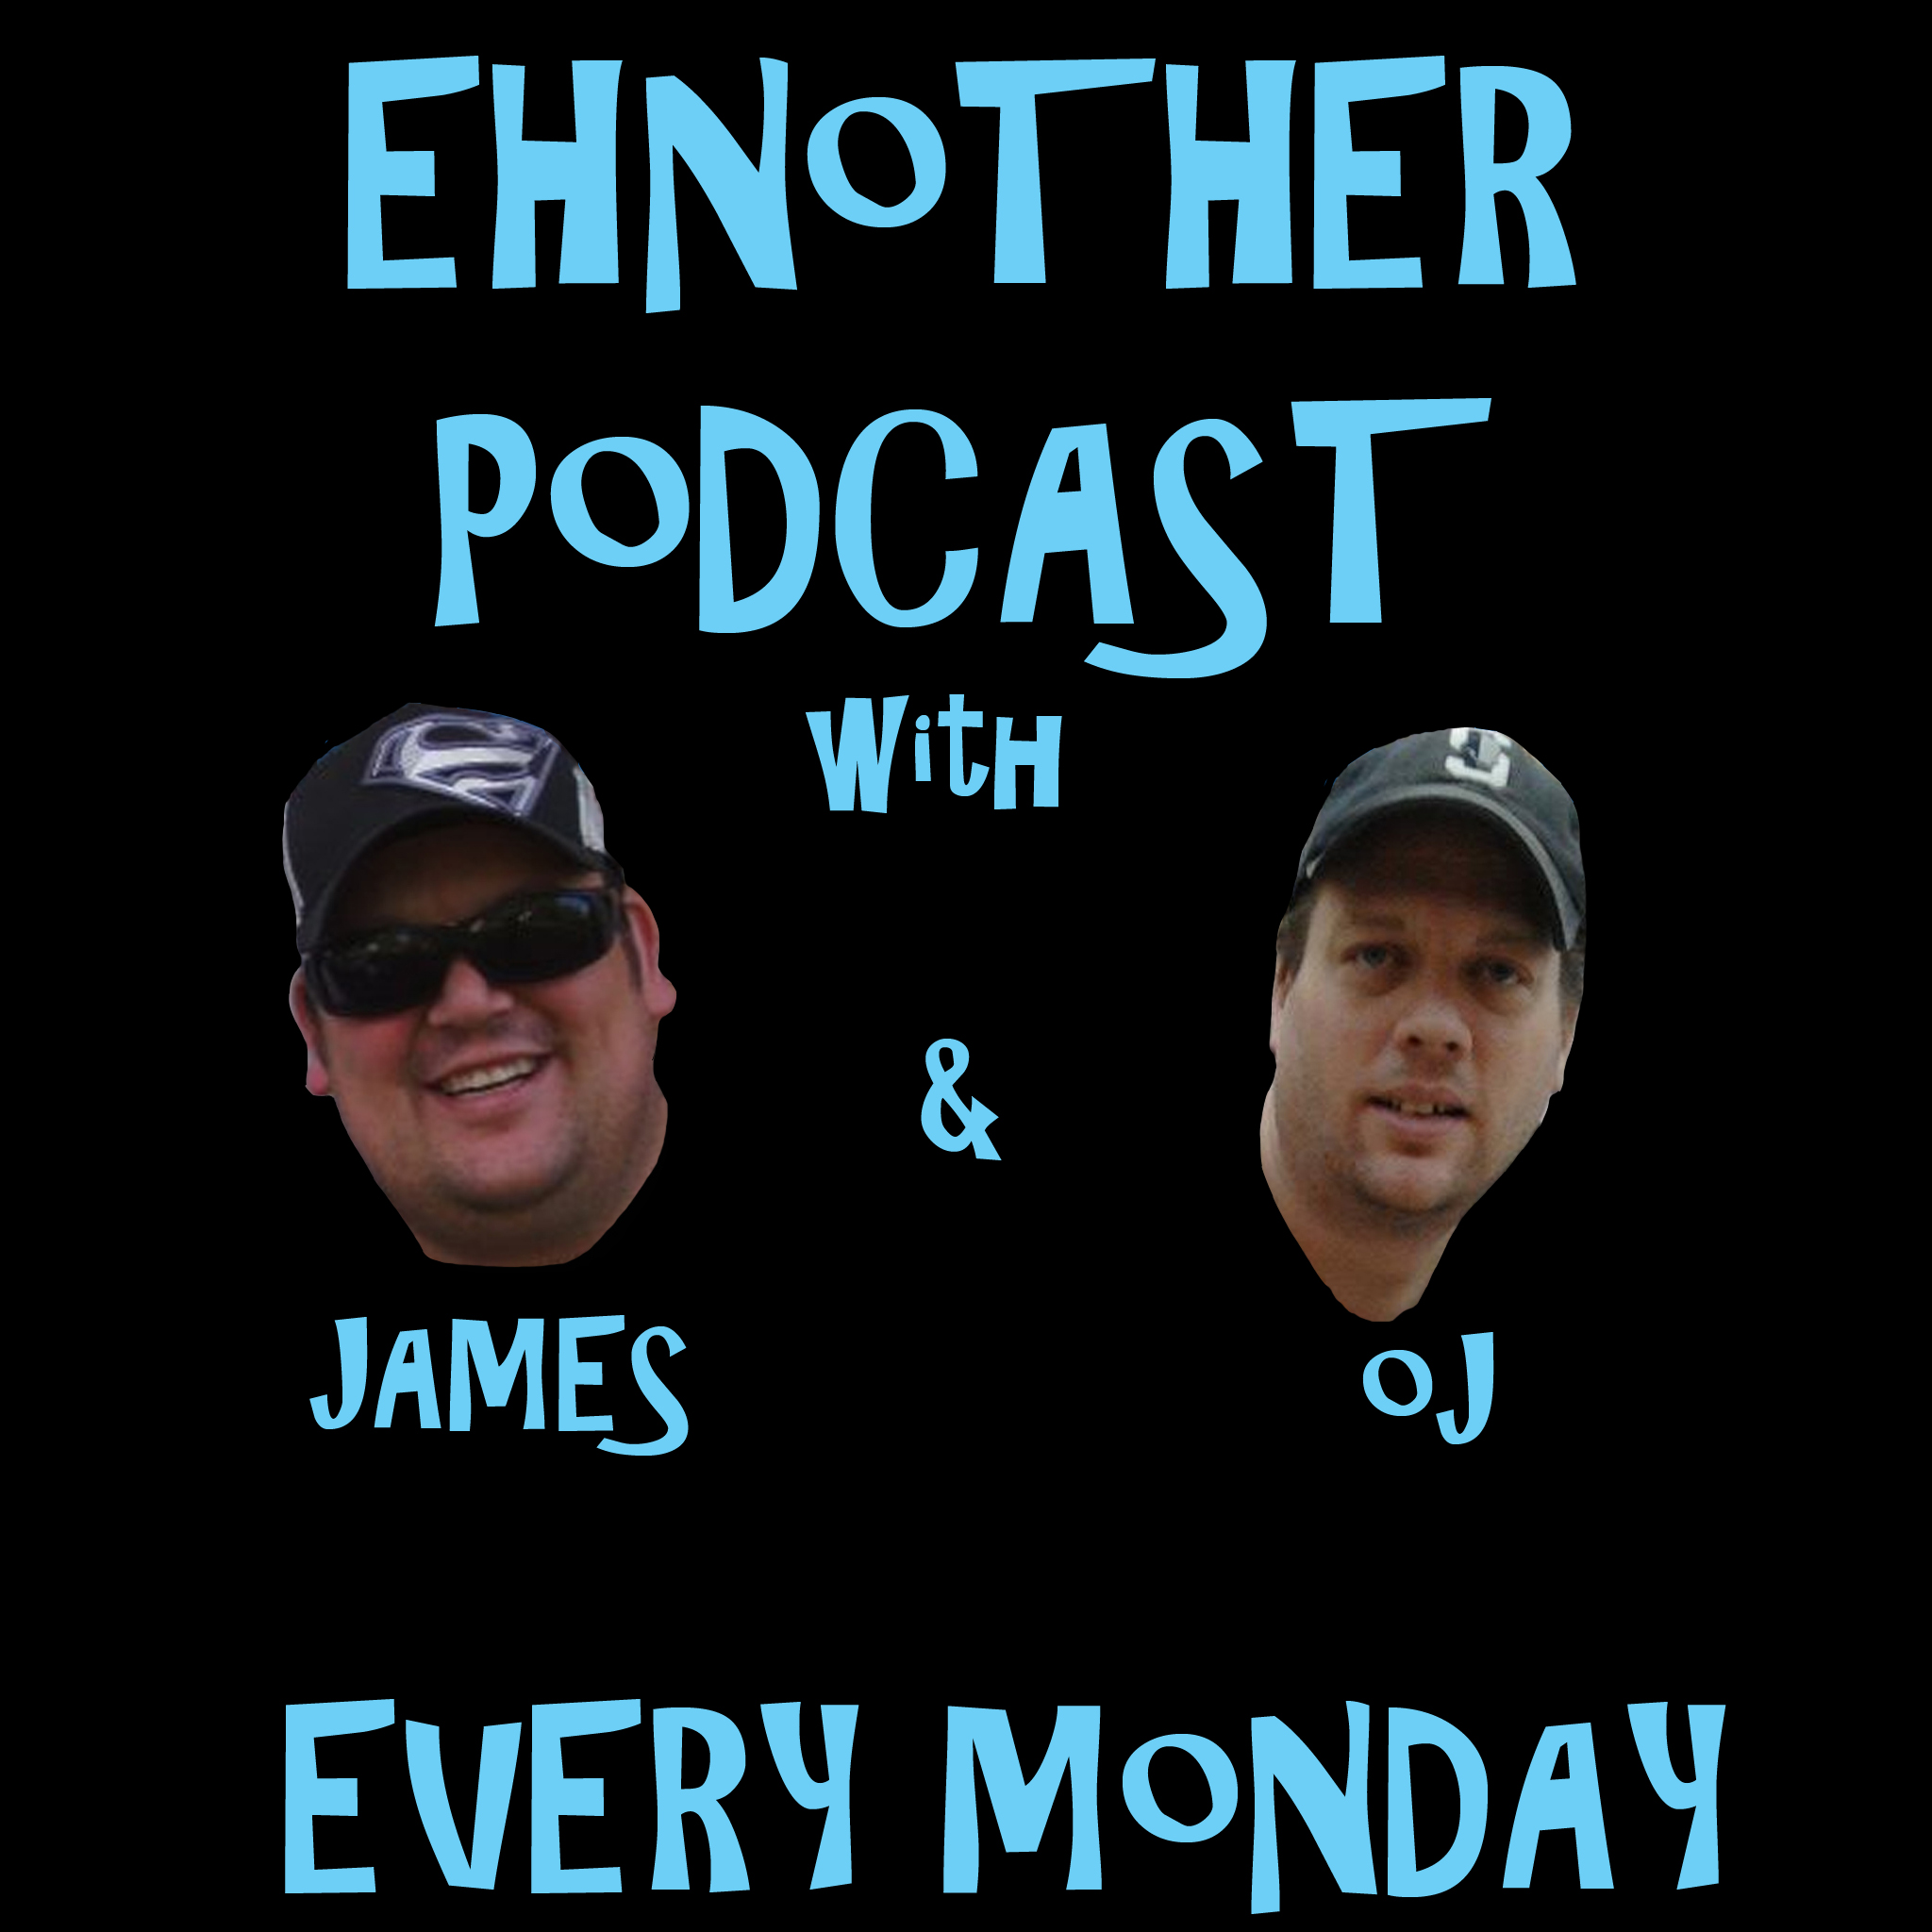 Ehnother Podcast – The Ehnother Podcast Network